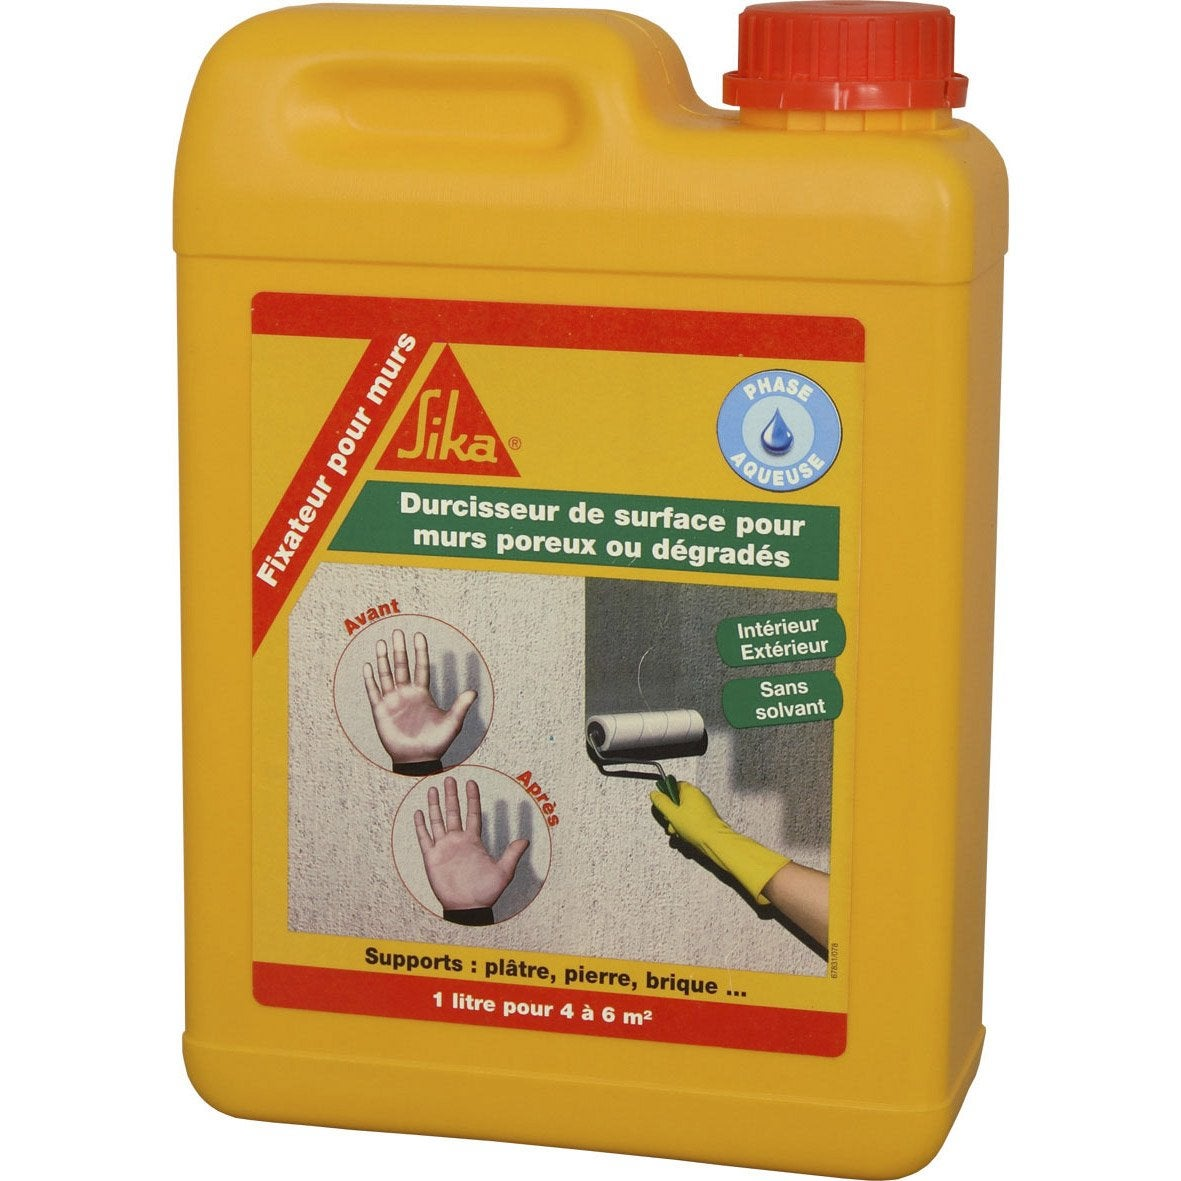 R sine protectrice sika impermur 2 l incolore leroy merlin - Traitement anti humidite ...